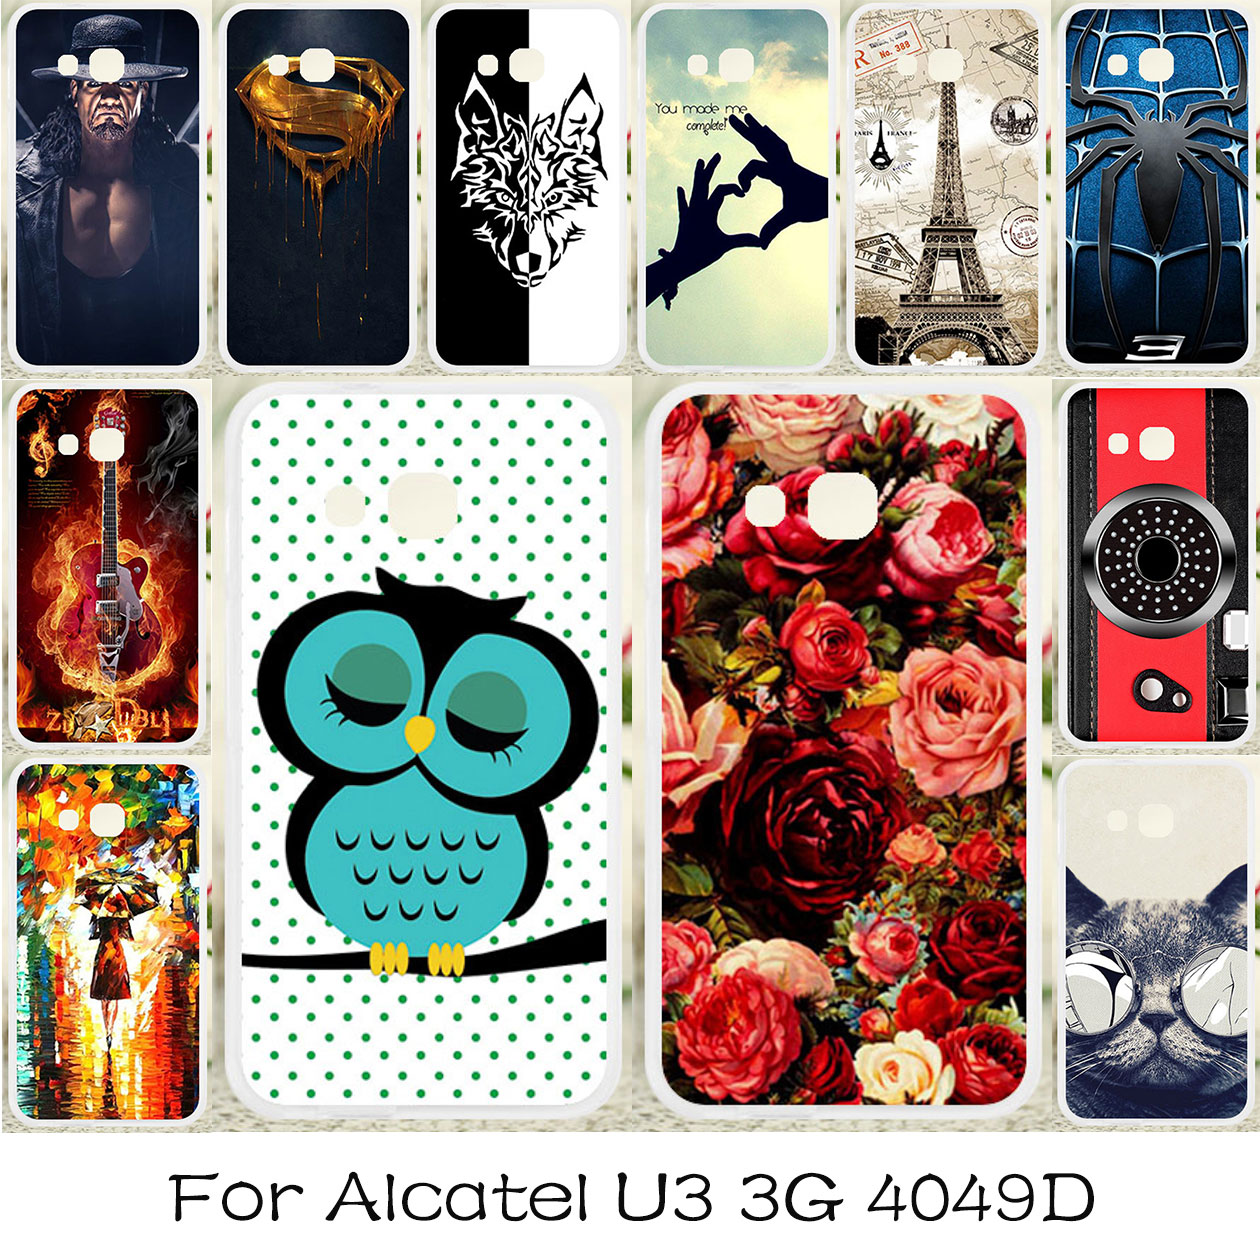 promo code ab13c 47941 US $1.25 21% OFF|TAOYUNXI Soft TPU Case For Alcatel U3 Cases Silicone Cover  For Alcatel U3 3G 4049D Covers Flexible DIY Painted Protective Coque-in ...